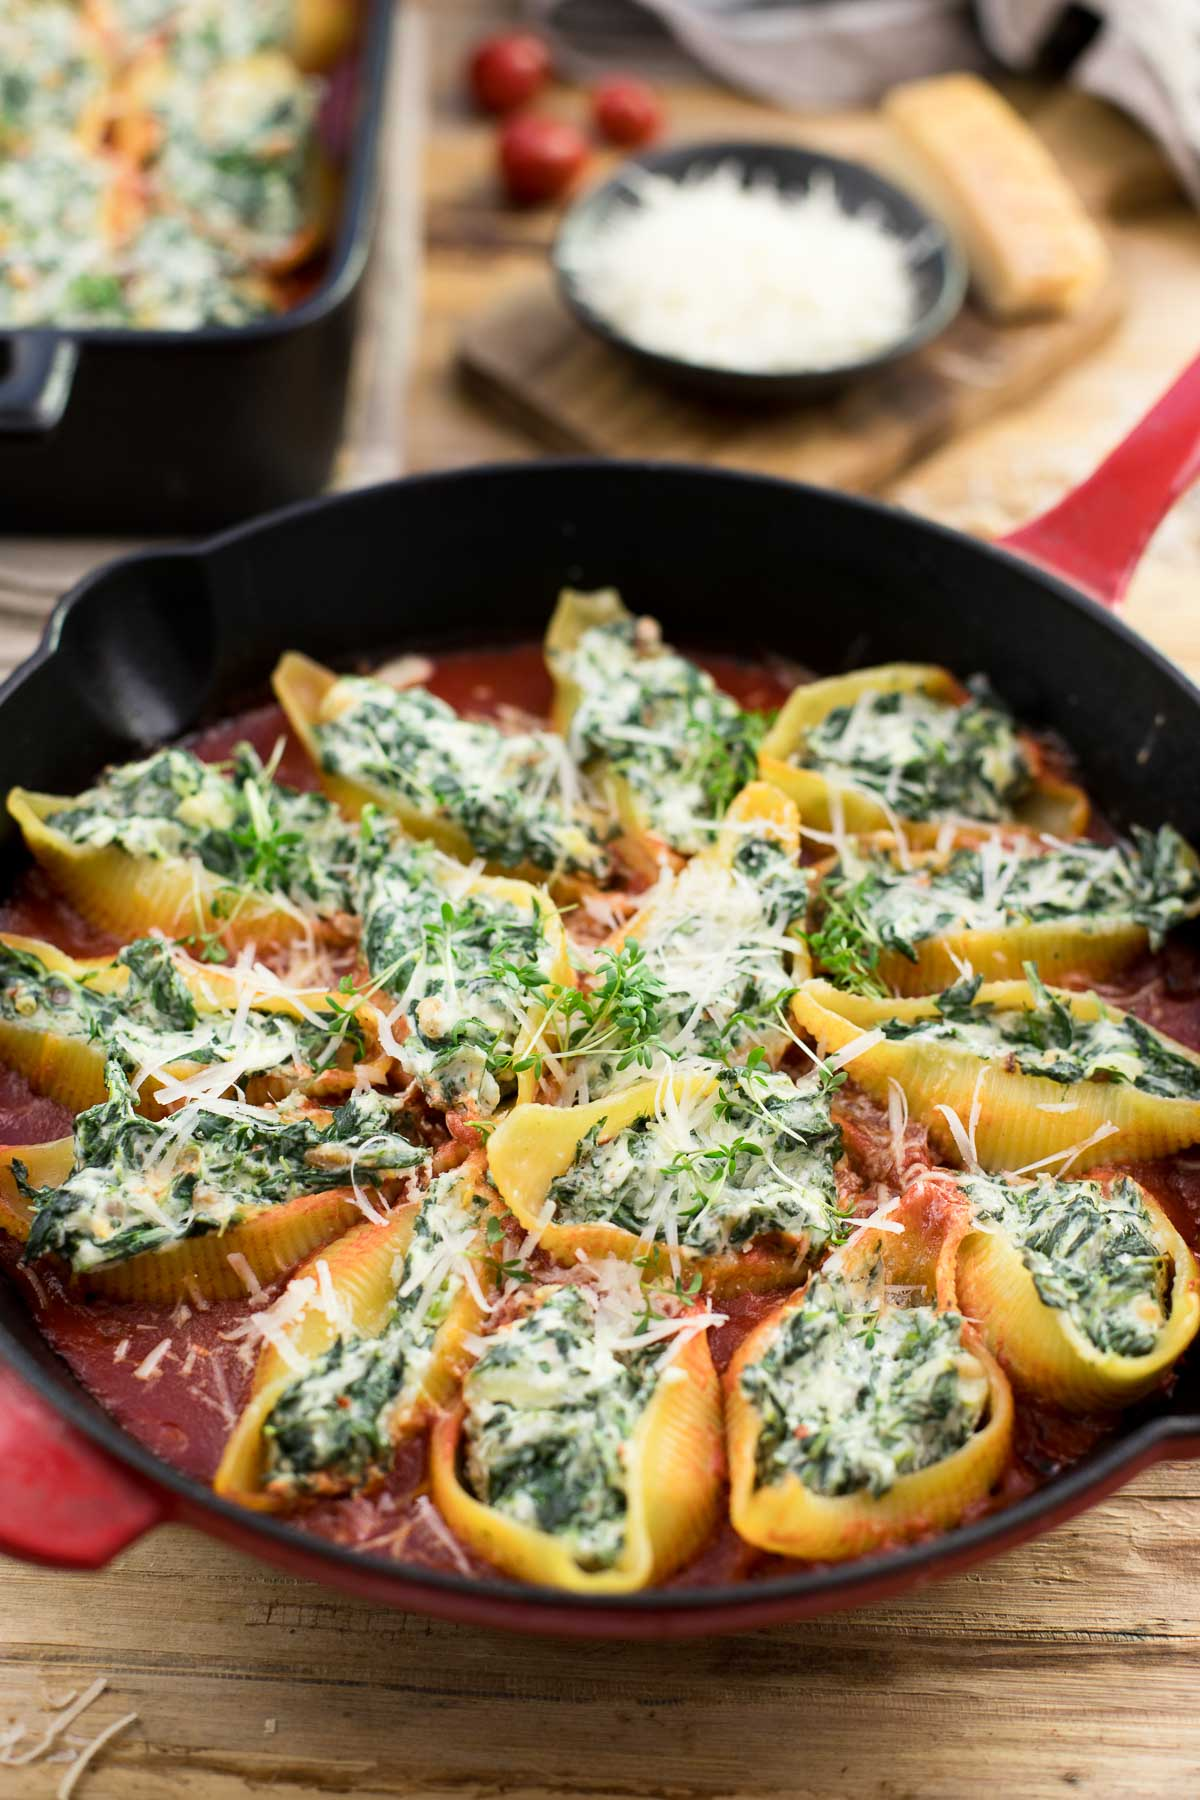 (Conchiglioni) Spinach and Ricotta Stuffed Shells